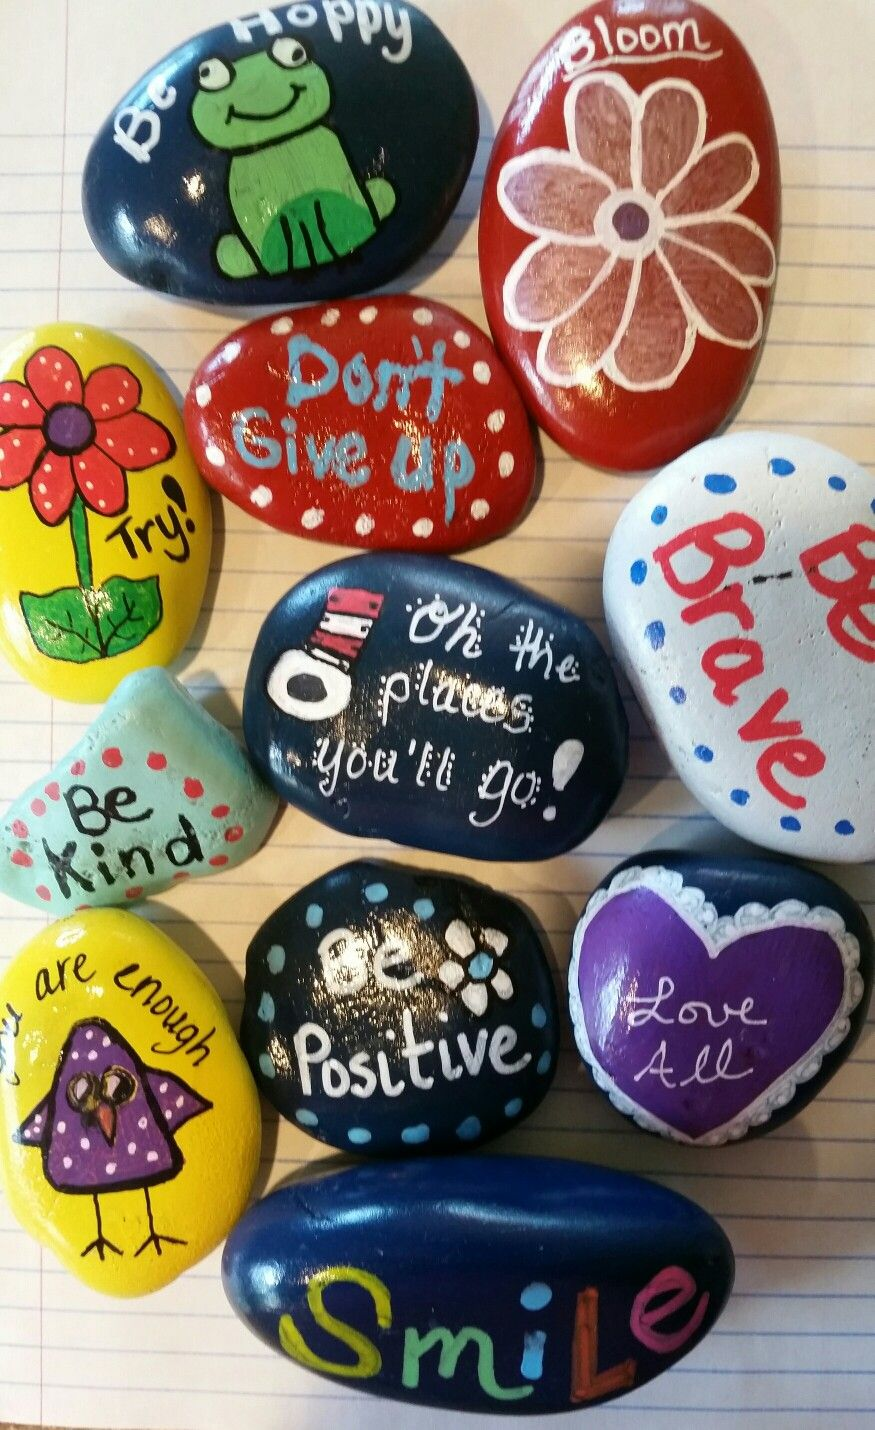 Positive rocks from Billie Park (With images) | Rock crafts ...